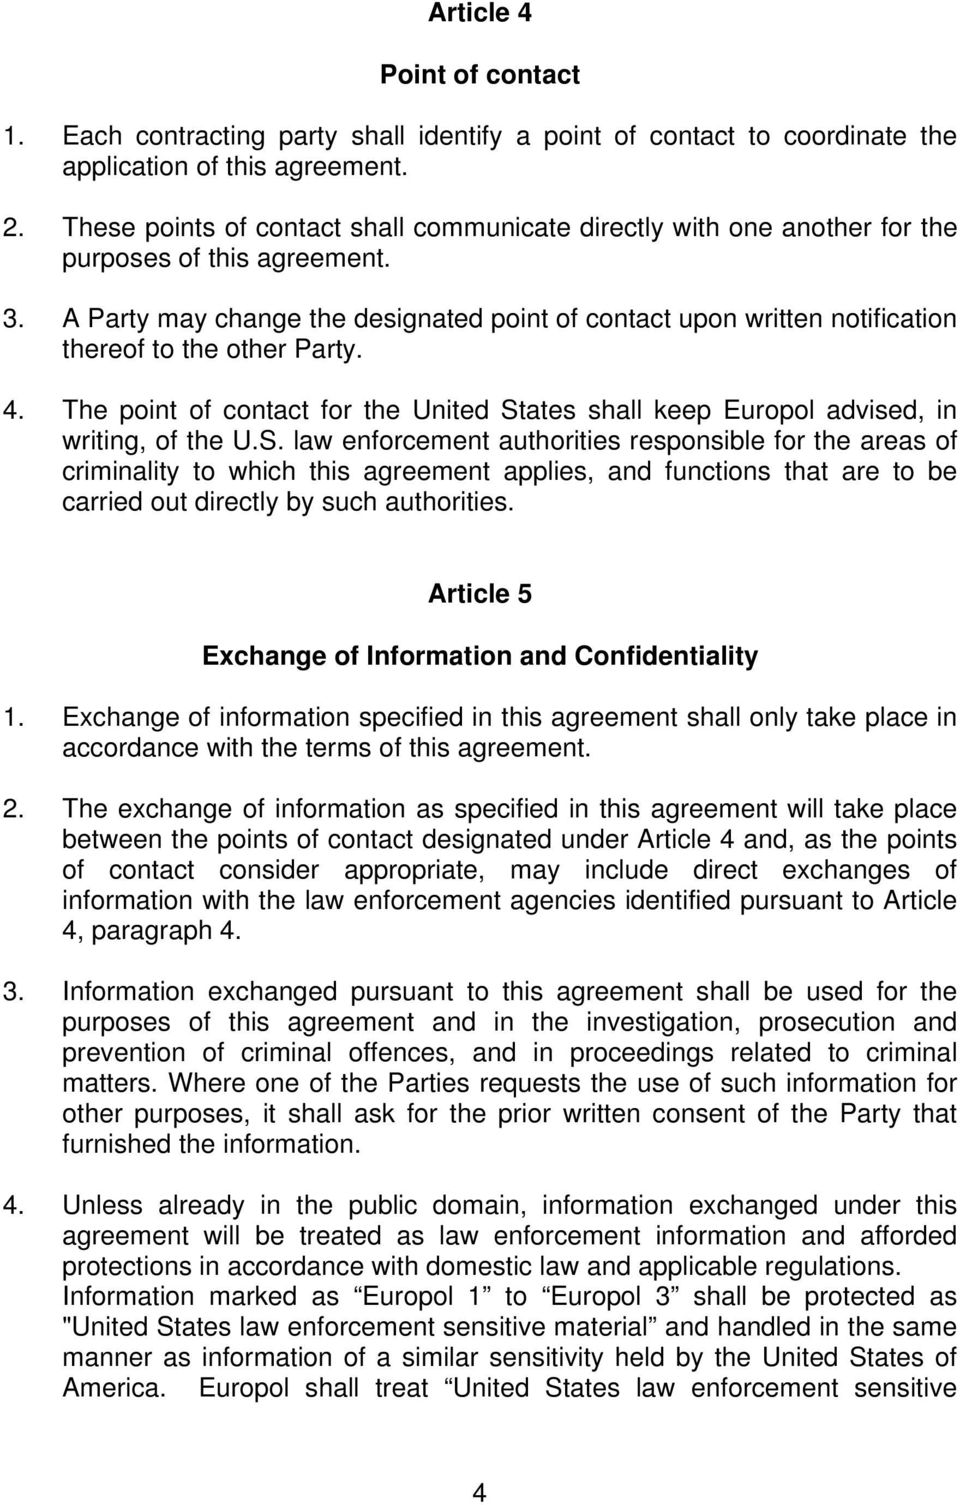 A Party may change the designated point of contact upon written notification thereof to the other Party. 4. The point of contact for the United States shall keep Europol advised, in writing, of the U.